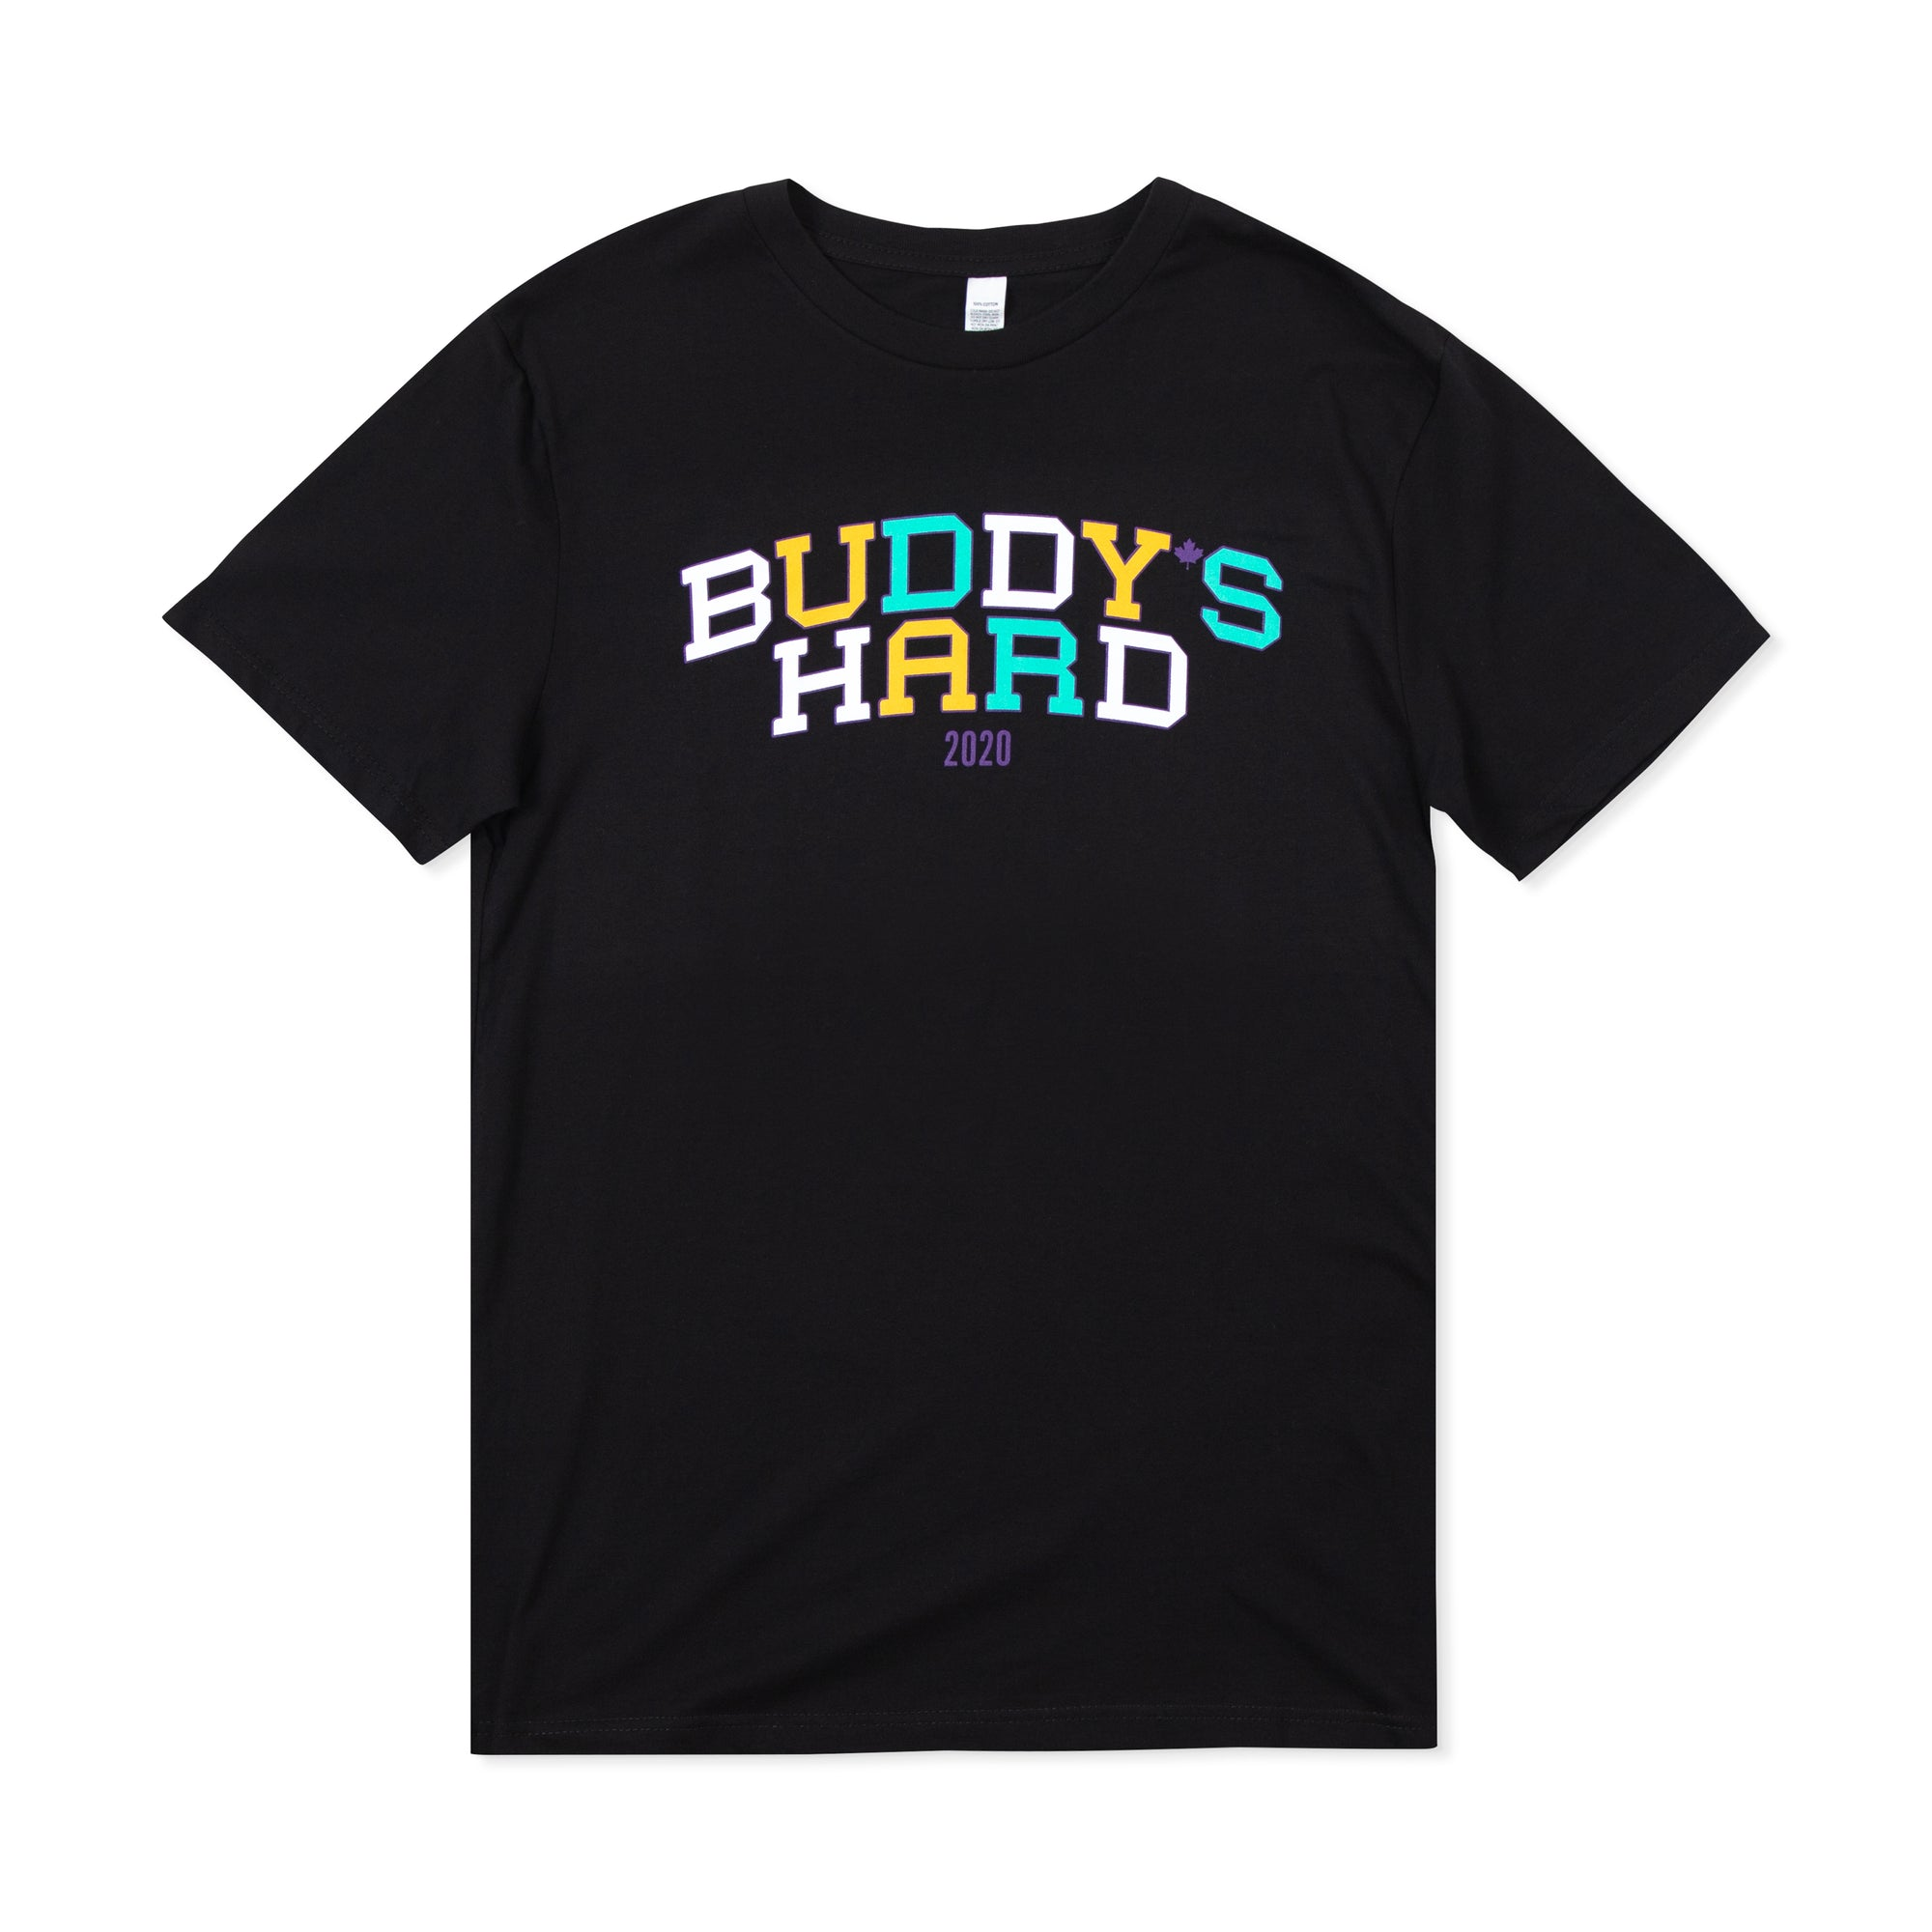 Buddy's Hard Tee